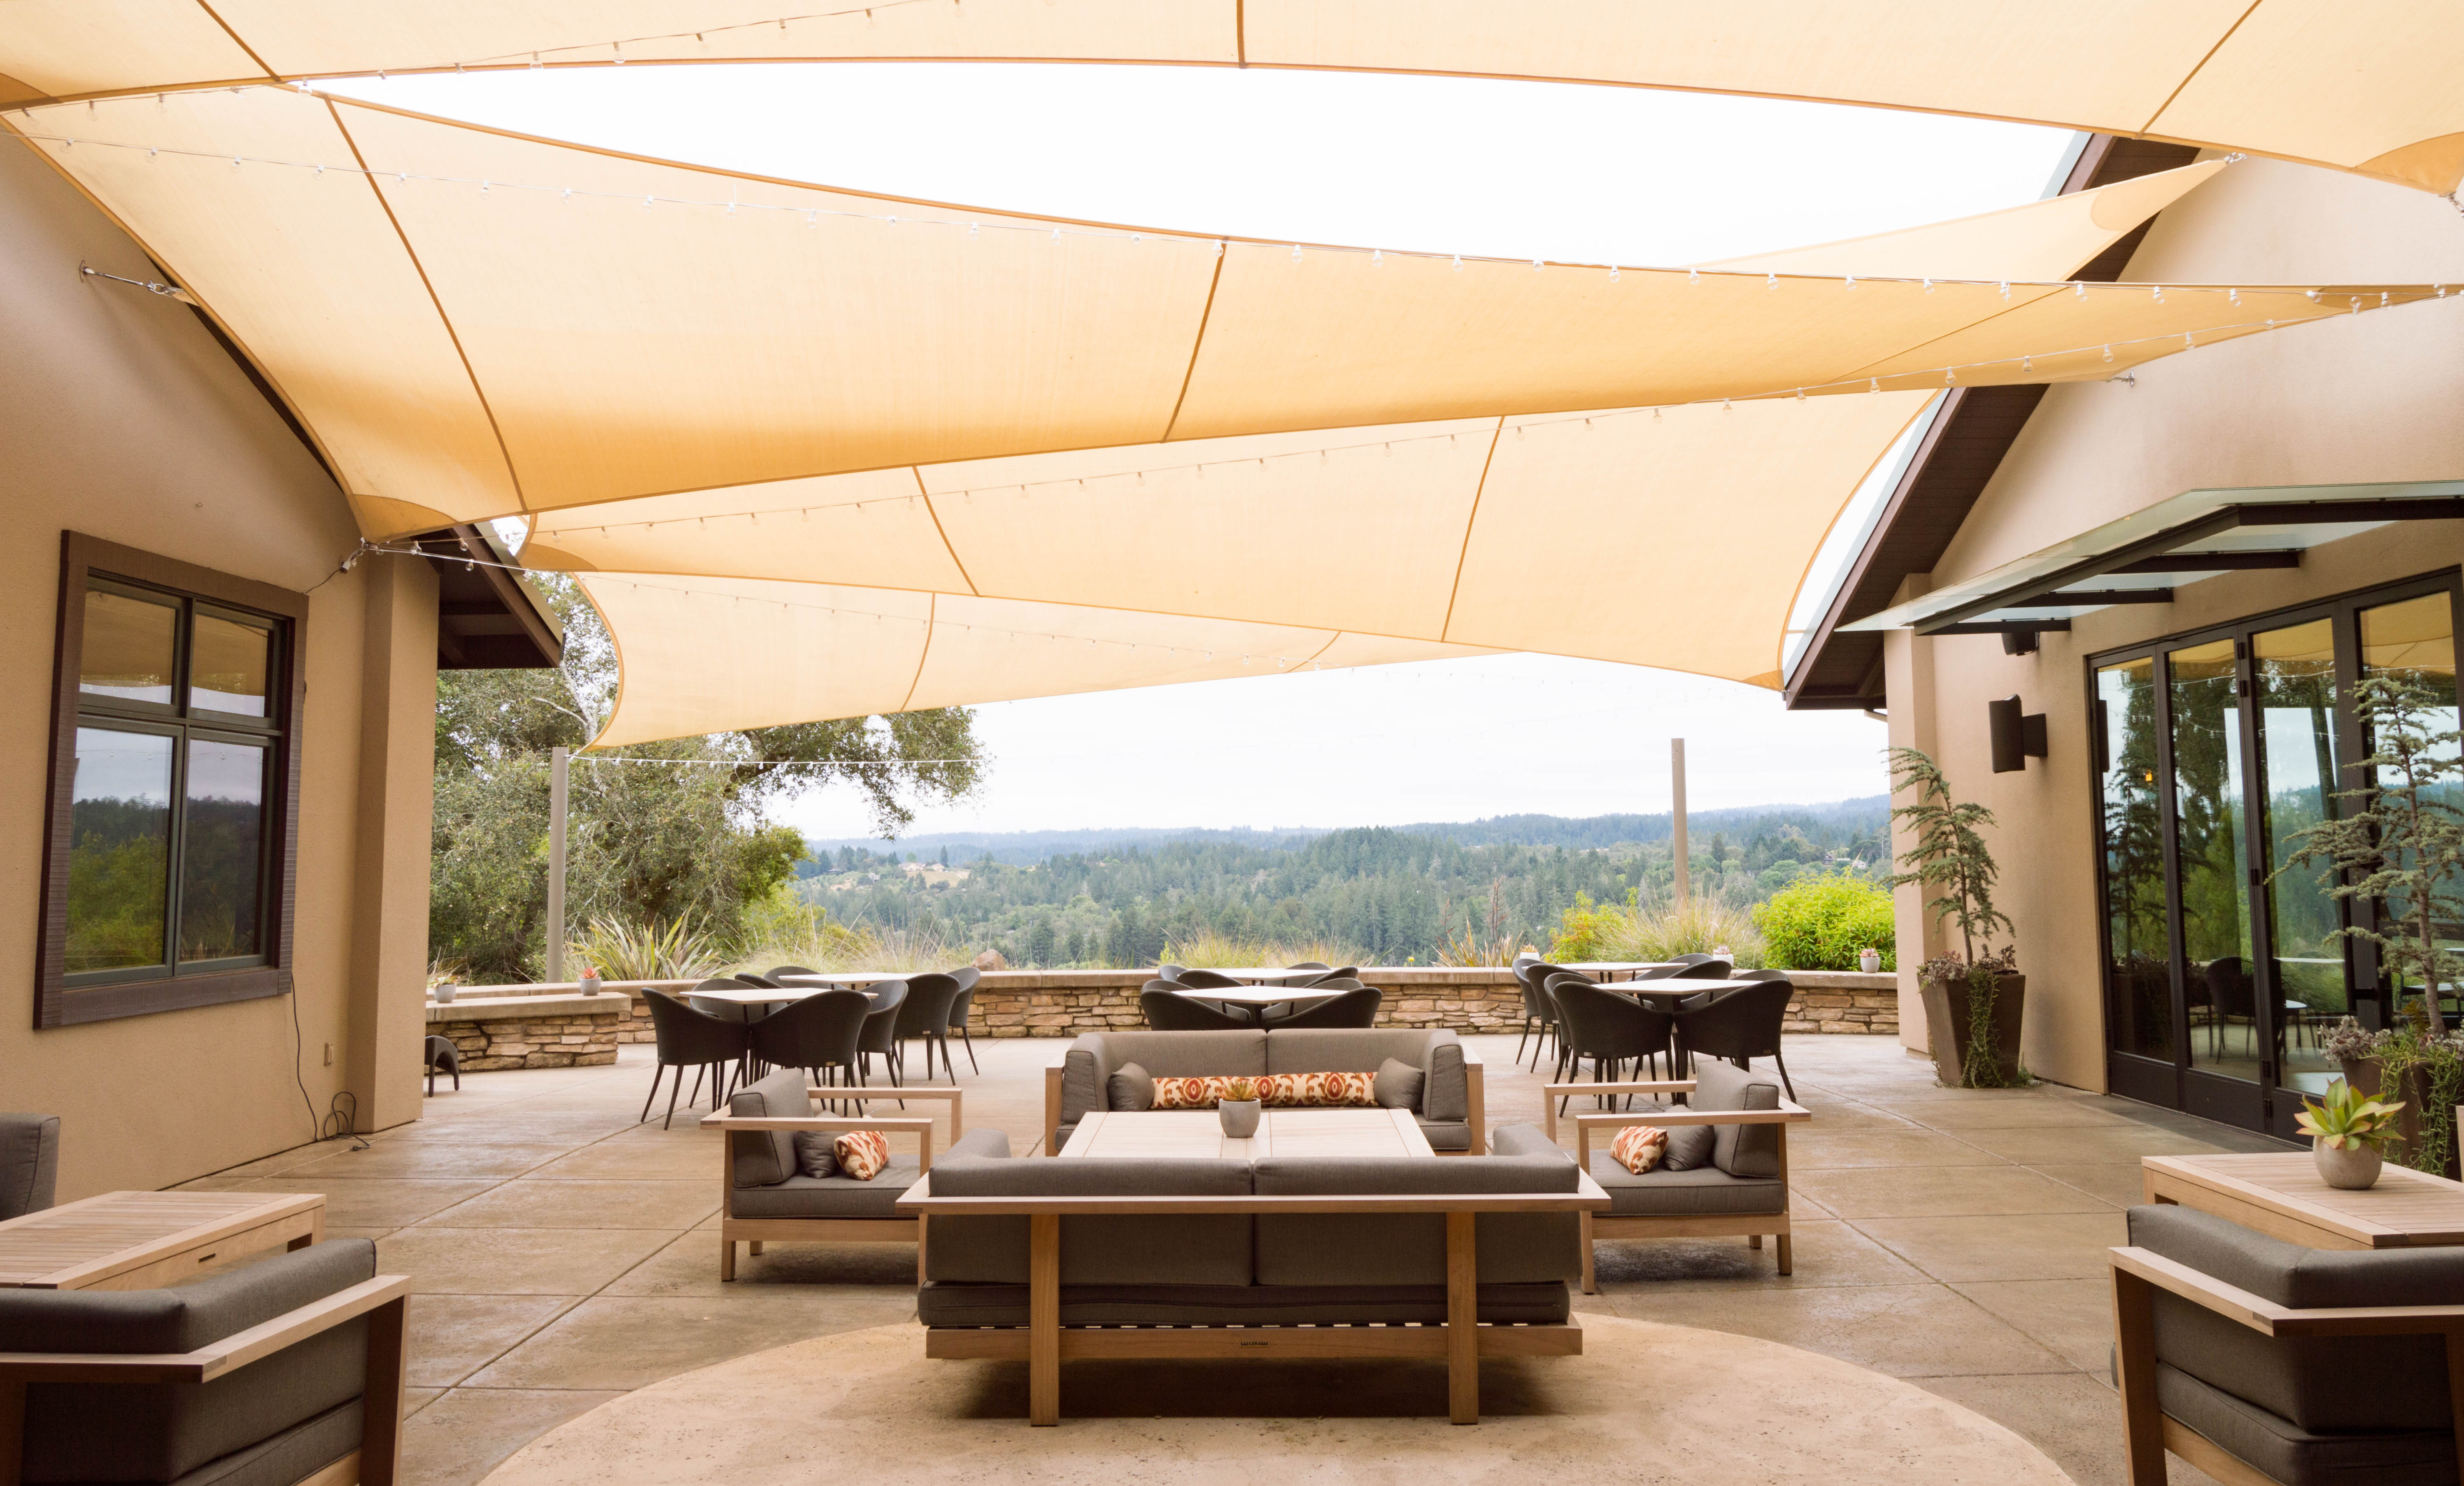 Taste some of the best expressions of Pinot Noir and Chardonnay at Gary Farrell Vineyards and Winery in Russian River Valley AVA, Sonoma County, California